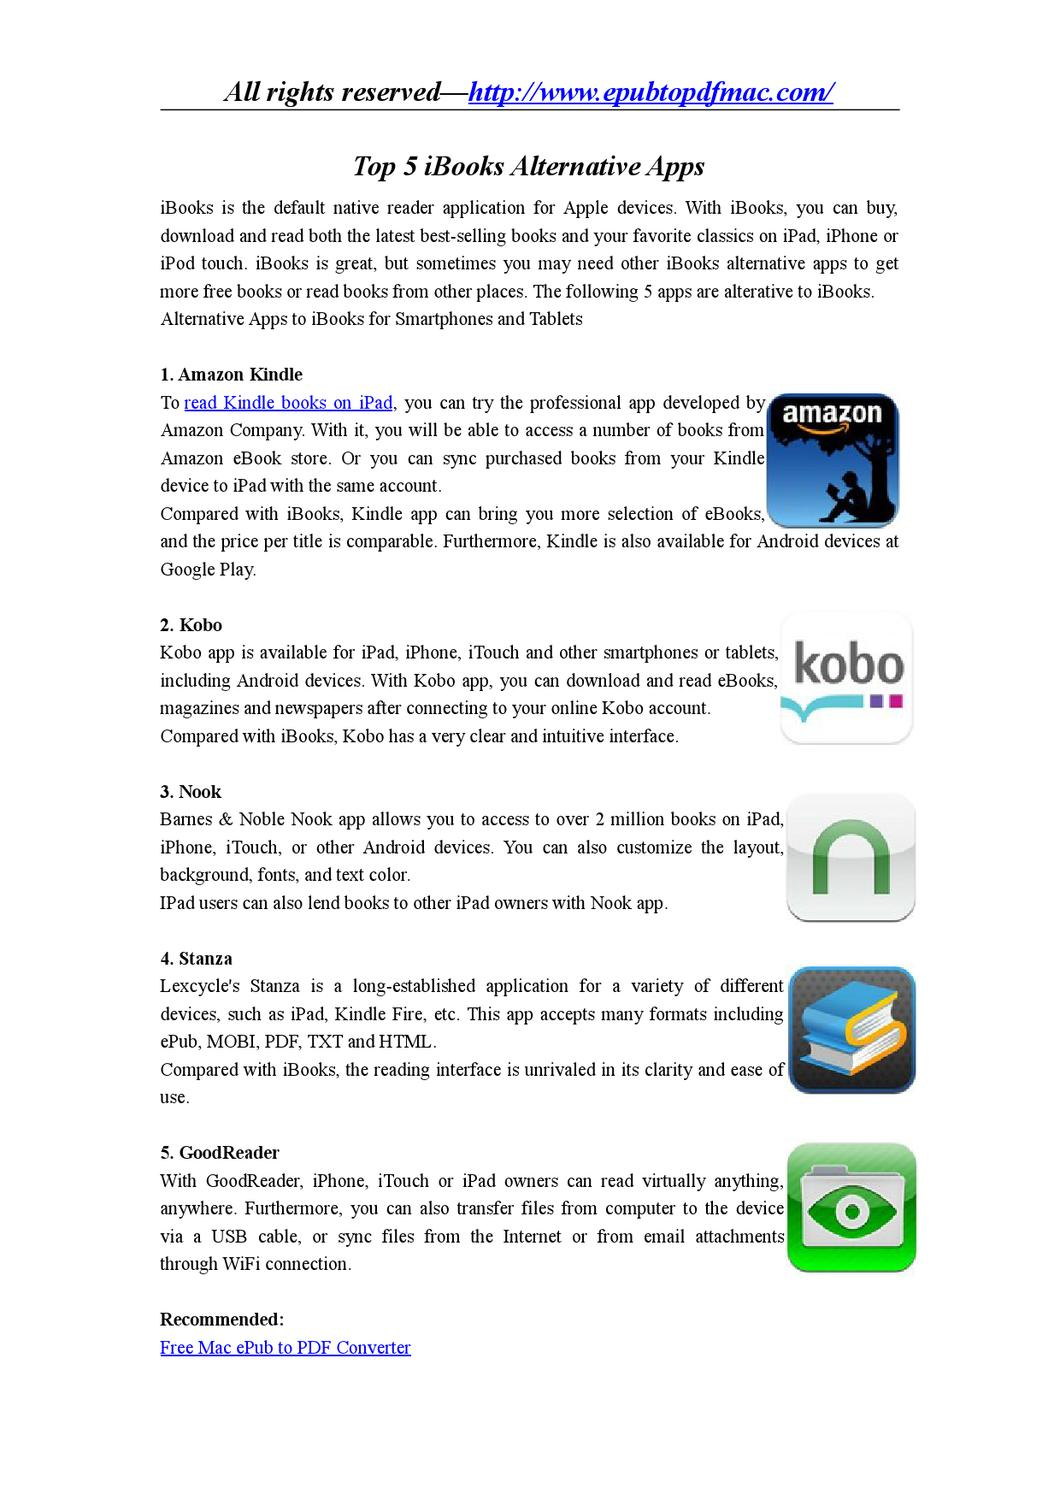 iBooks Alternative Apps for iPad, iPhone, iTouch, and Android by